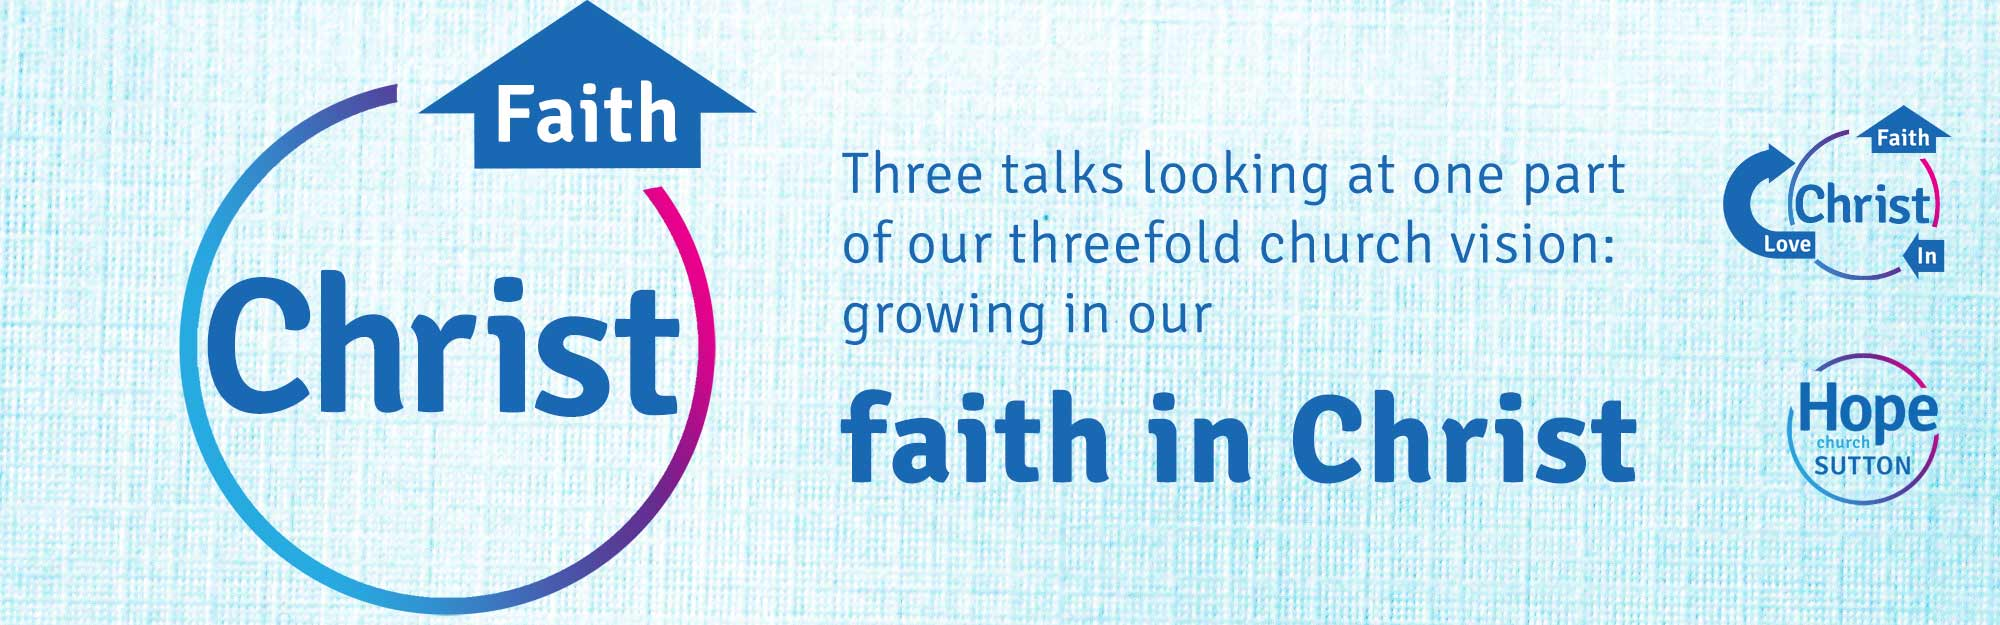 Faith-in-Christ---Web-Banner